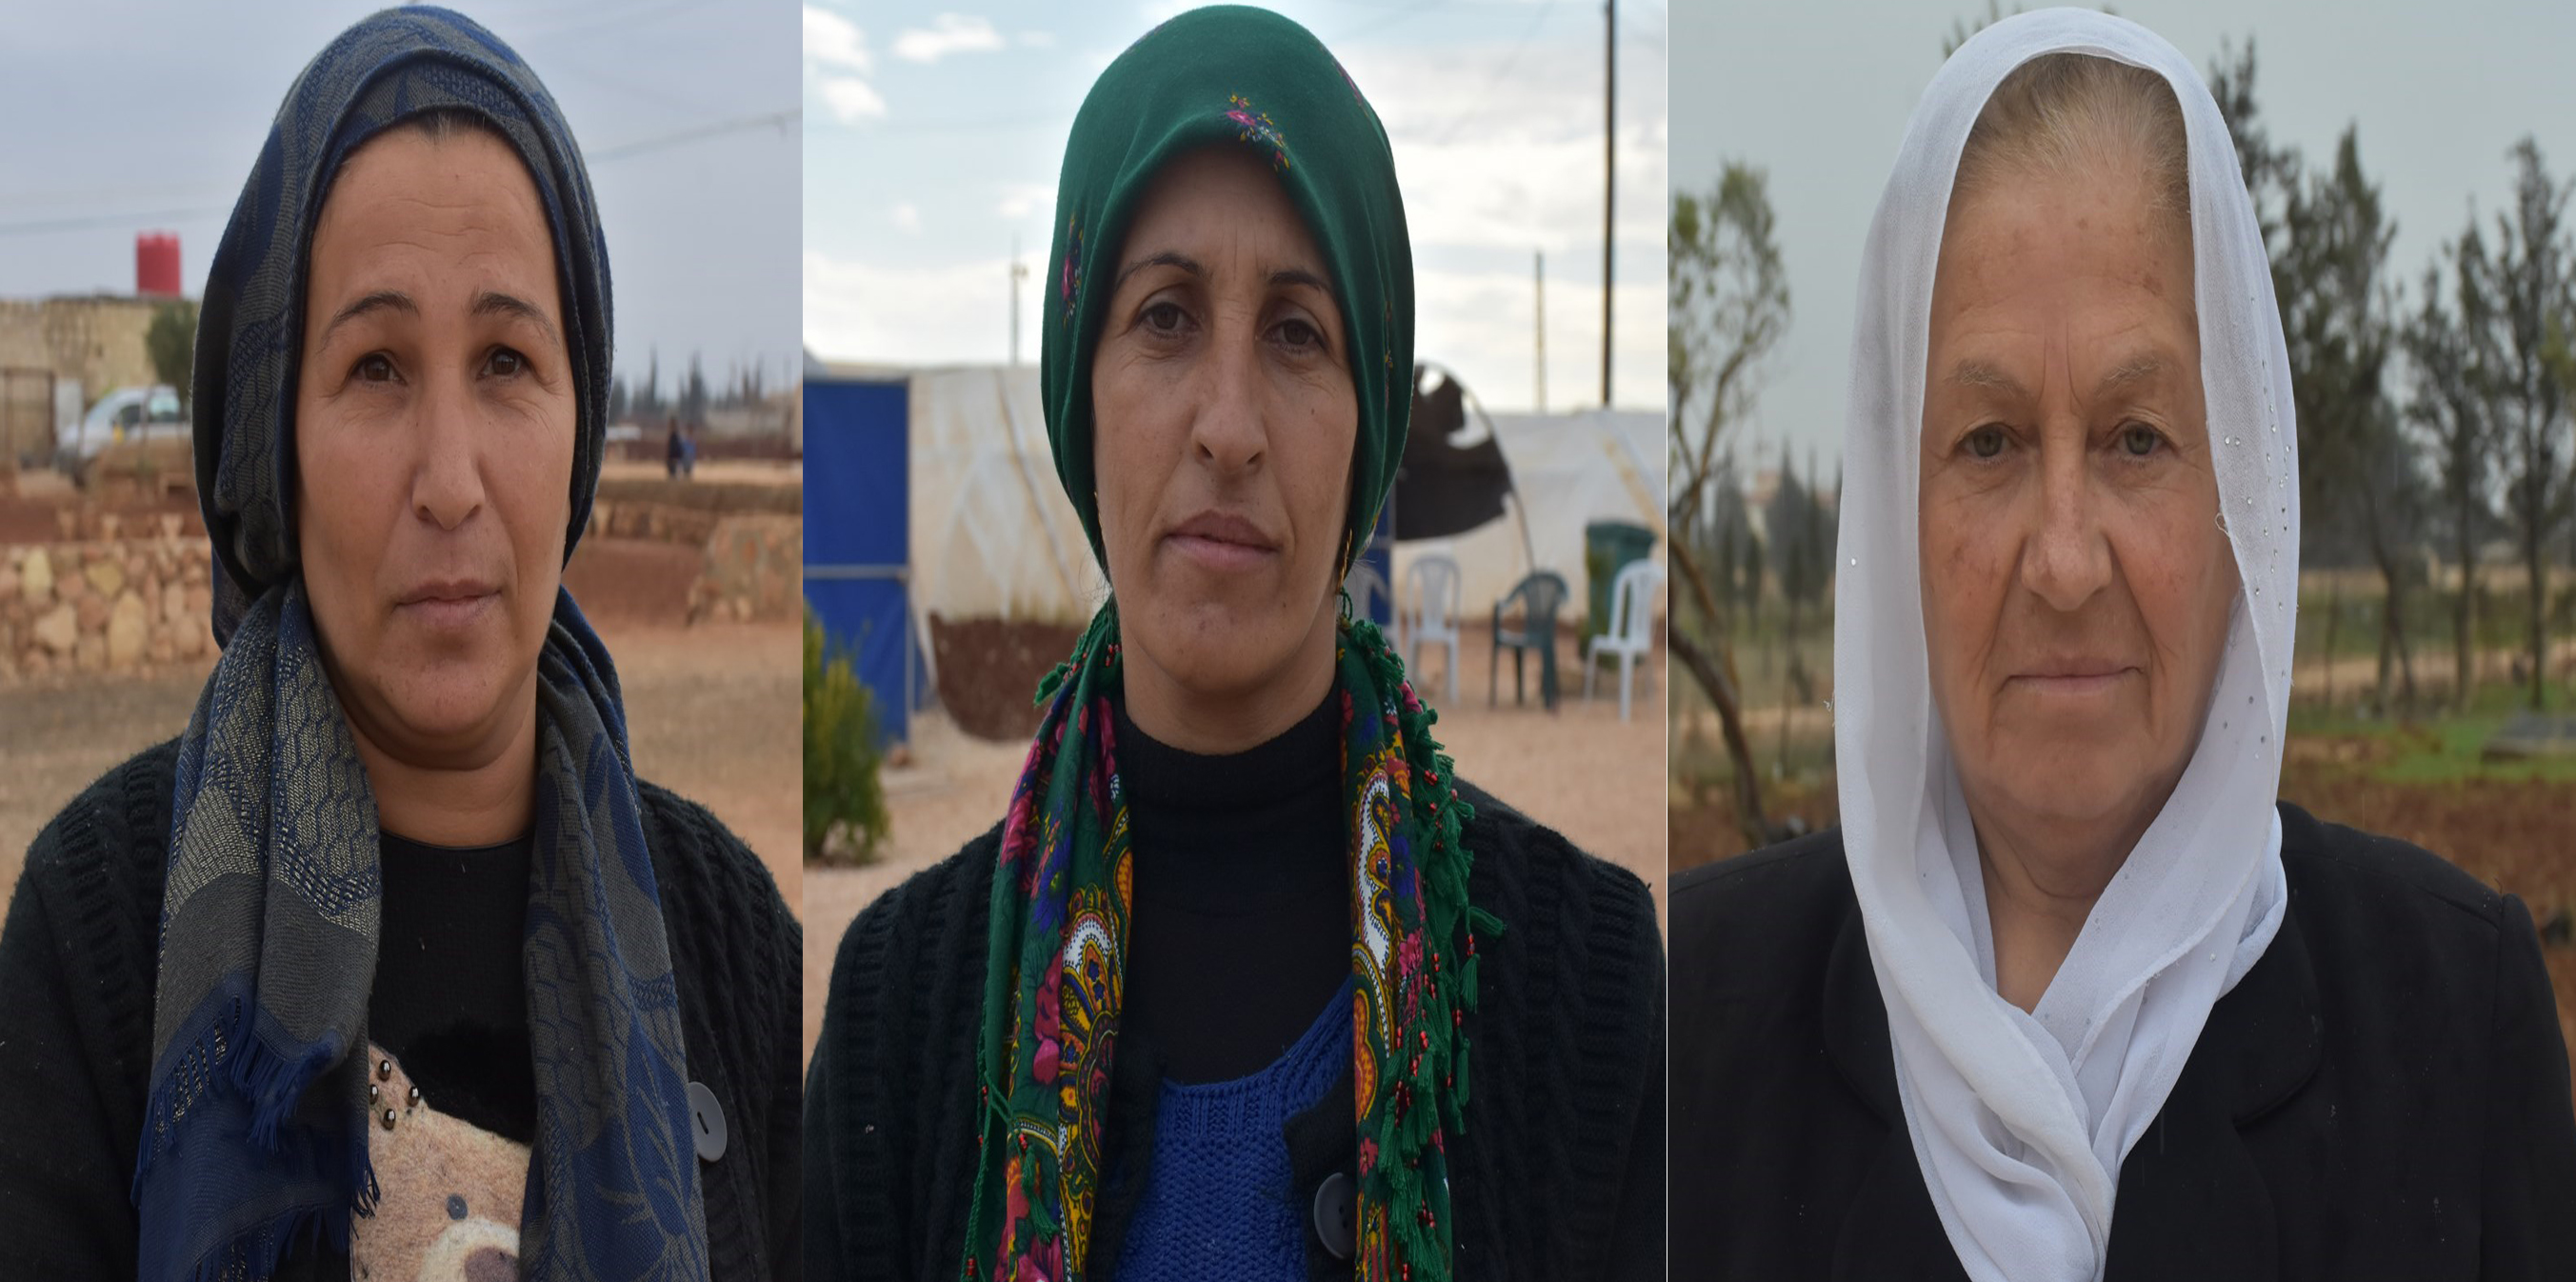 'We to escalate our struggle to achieve demands of Leyla Guven'